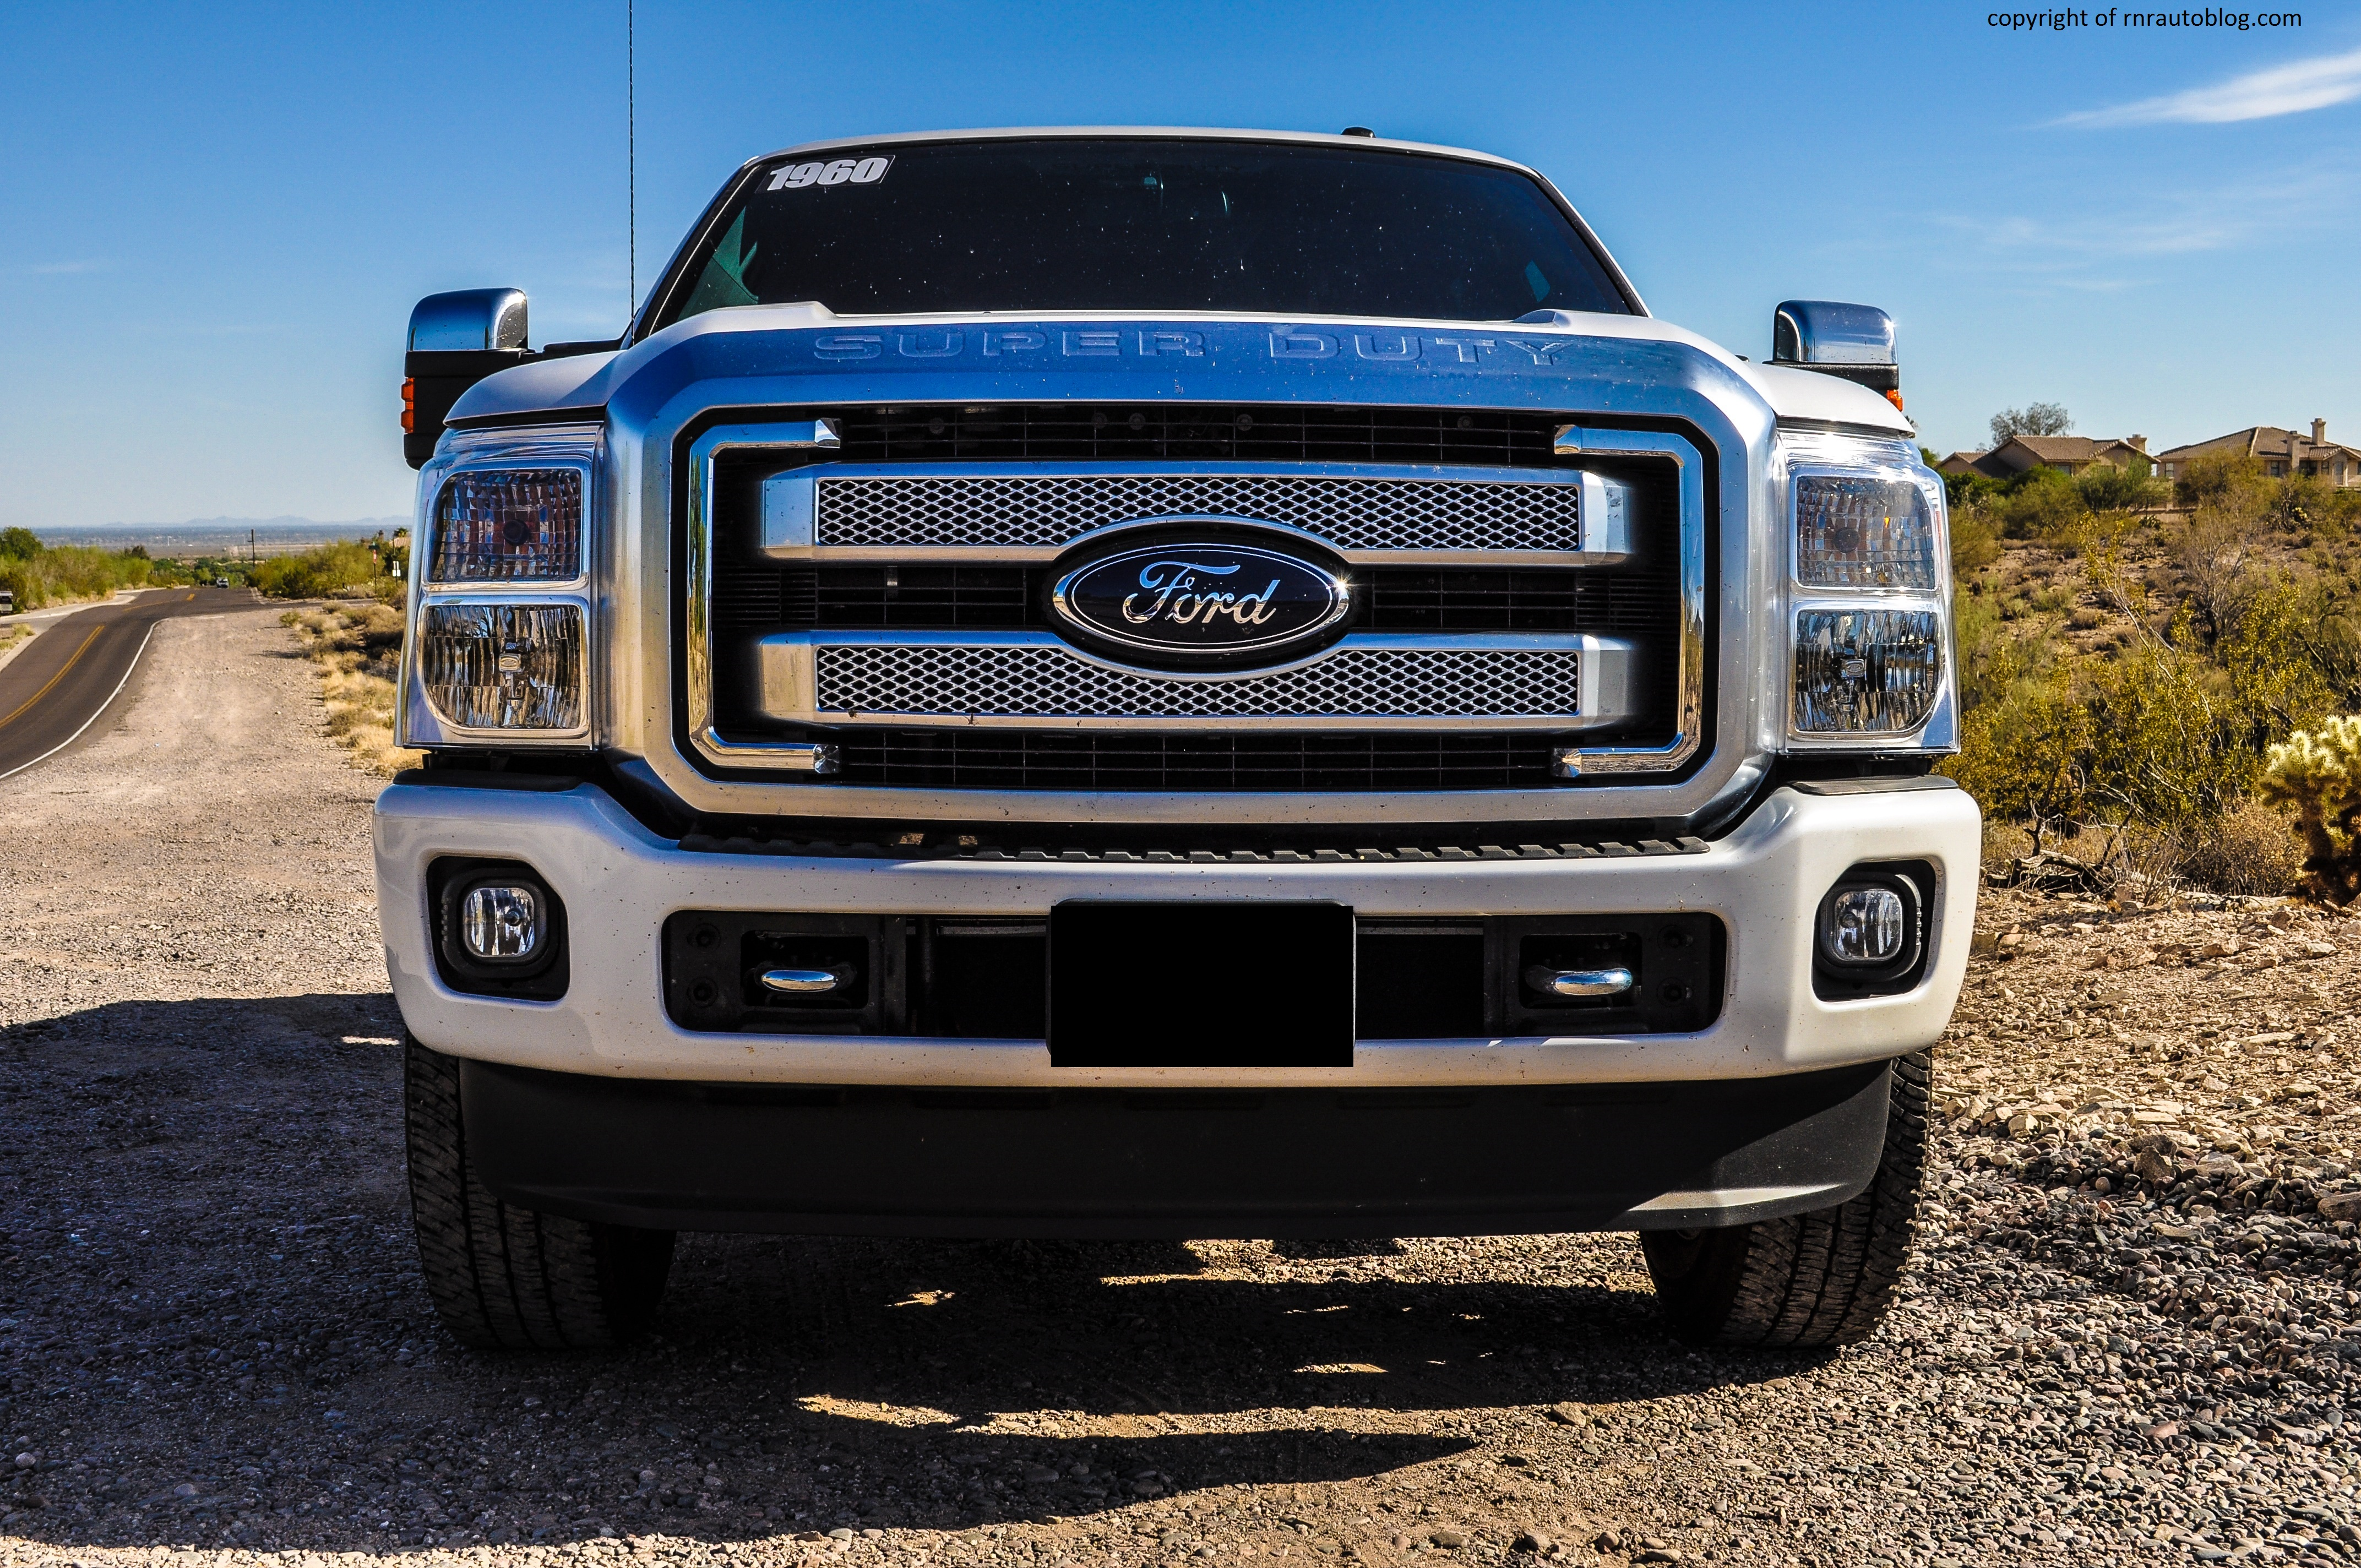 2014 Ford F 350 Platinum Review Rnr Automotive Blog 250 Black From This Point On The 150 And Super Duty Trucks Were Separate Models While Still Being Part Of Series As That Remains True